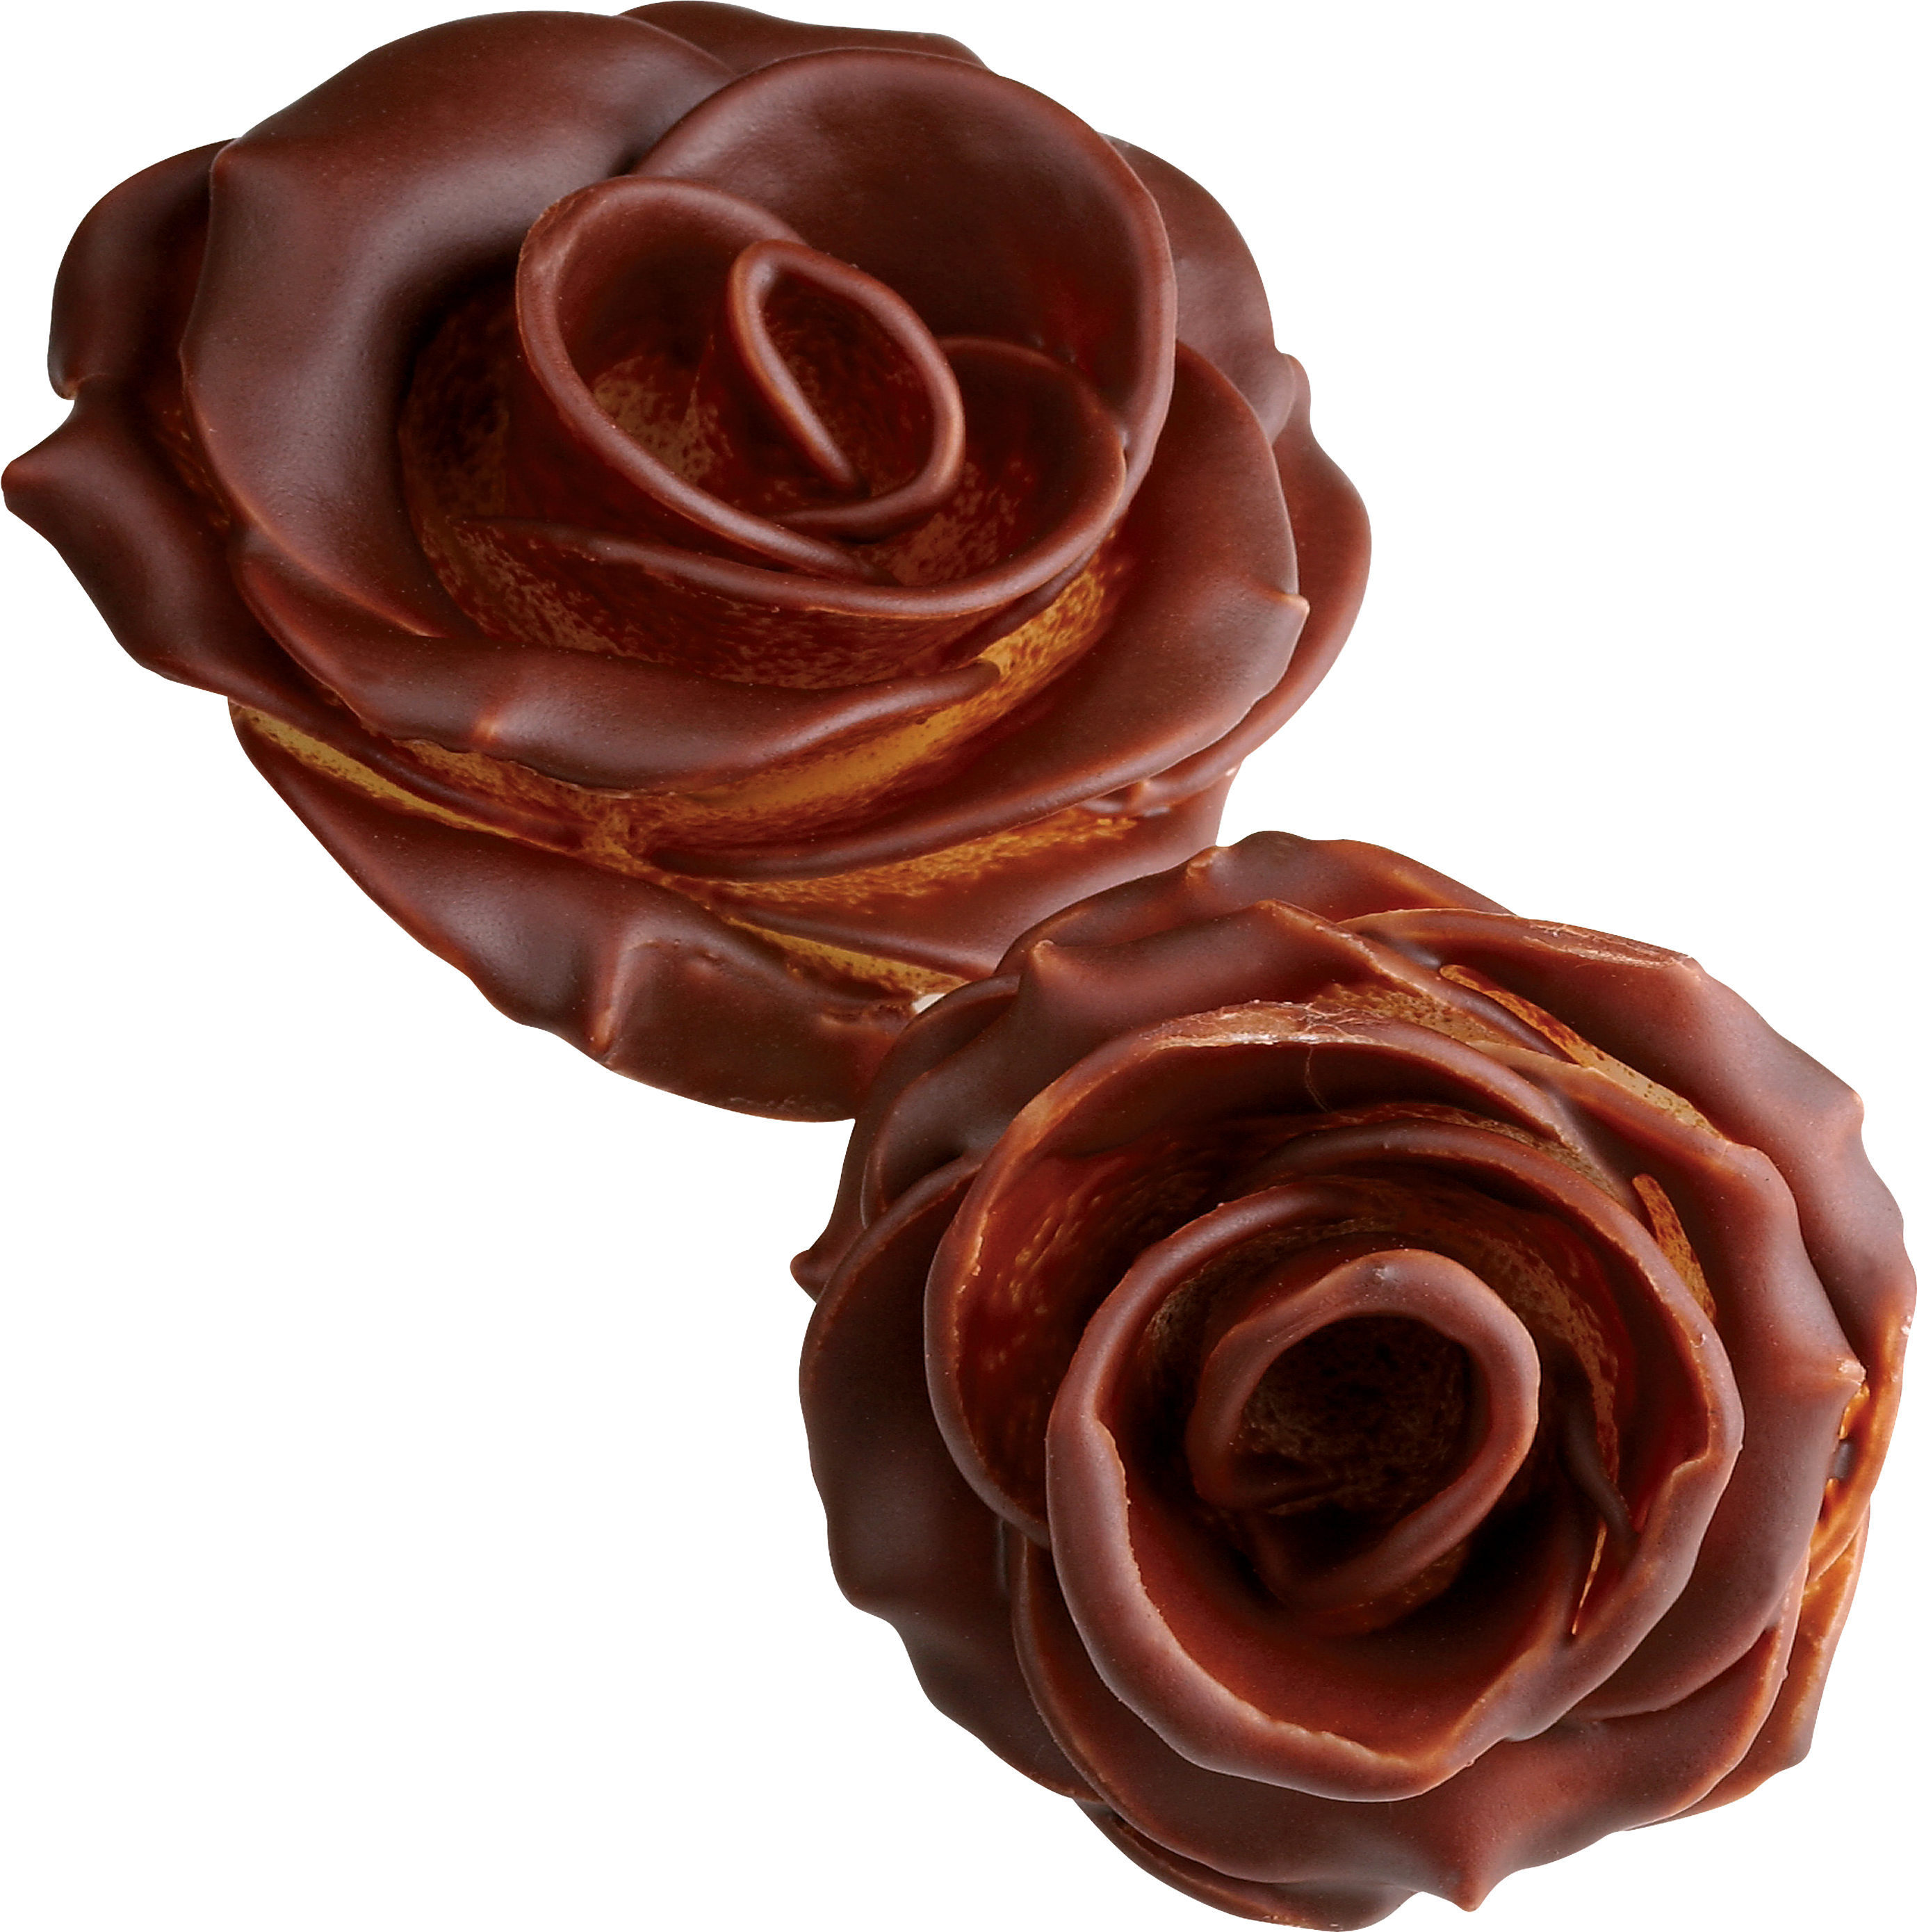 Clipart rose chocolate. Png image purepng free